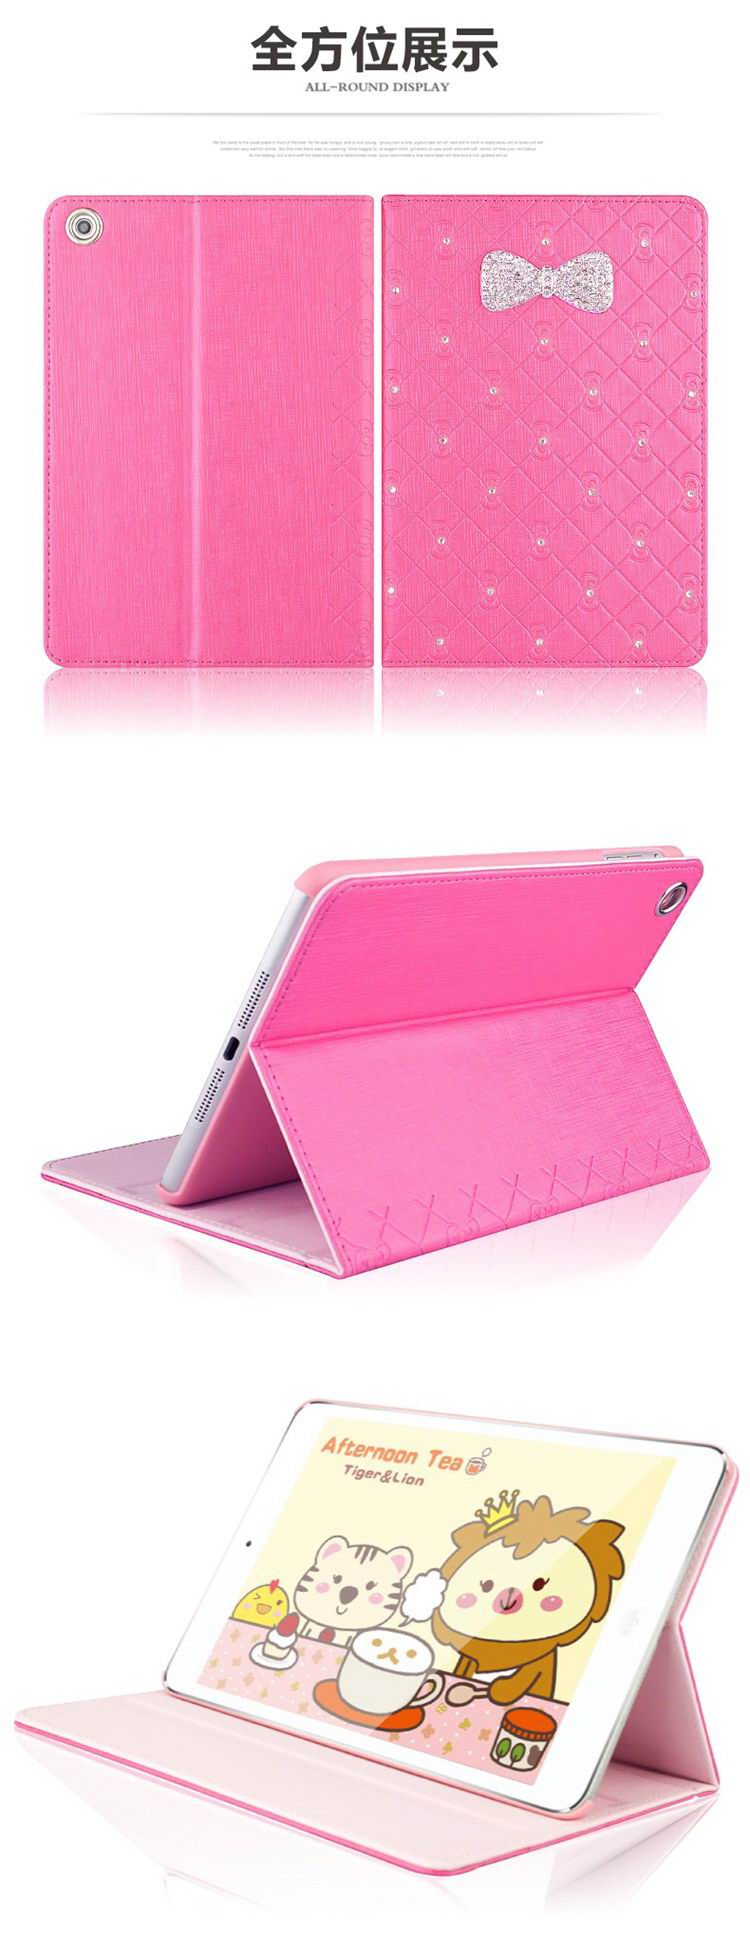 Case with rhinestones & bow for Apple iPad Air 1, iPad Air 2, Apple iPad 2, iPad 3, iPad 4, Apple iPad Mini 1, iPad Mini 2, iPad Mini 3